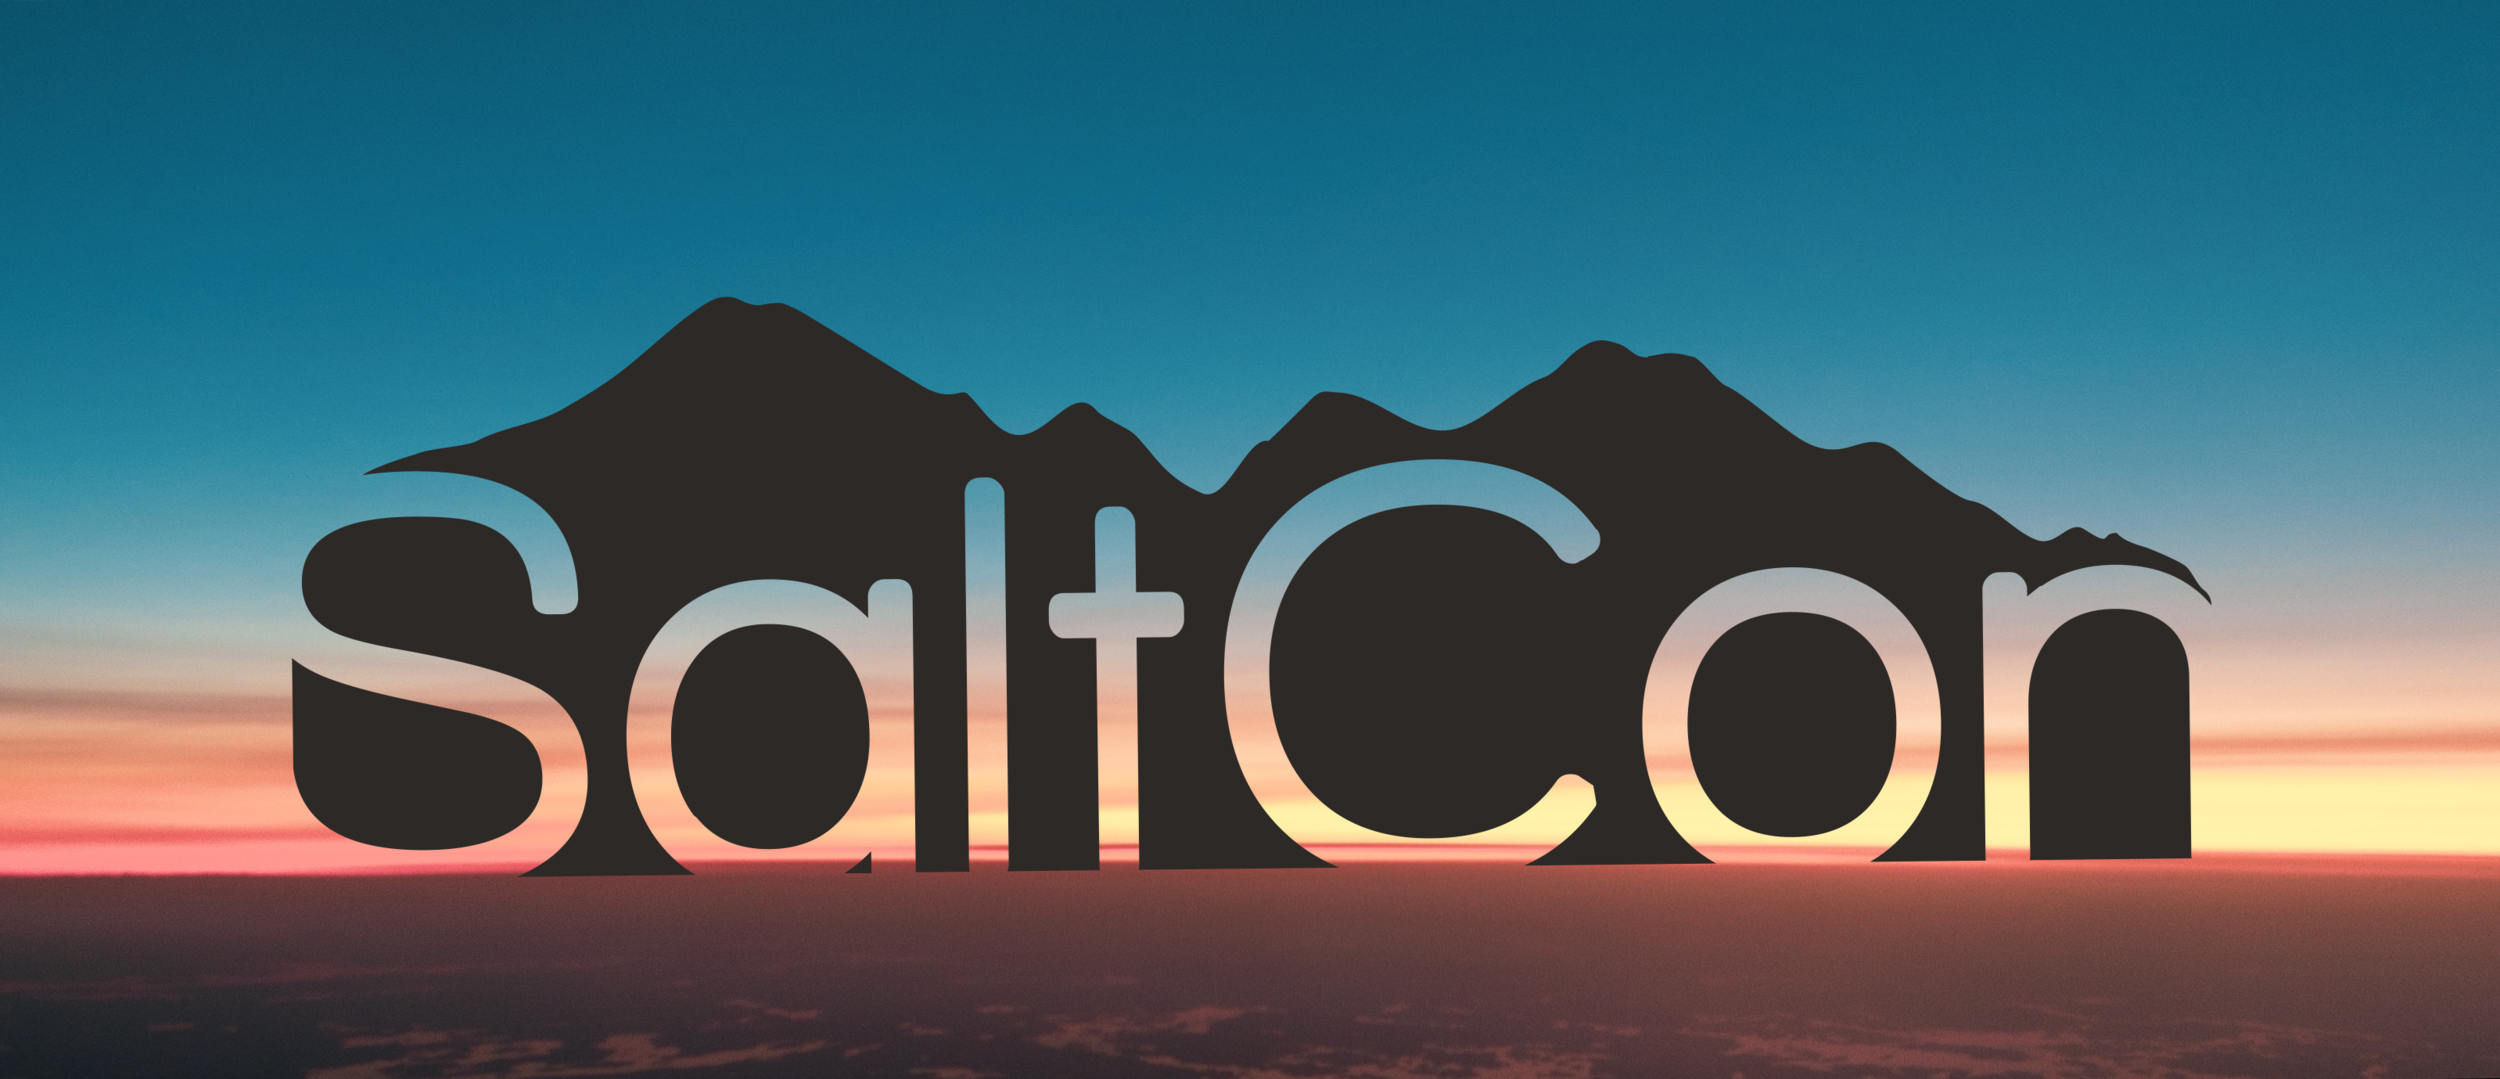 saltcon-header.png